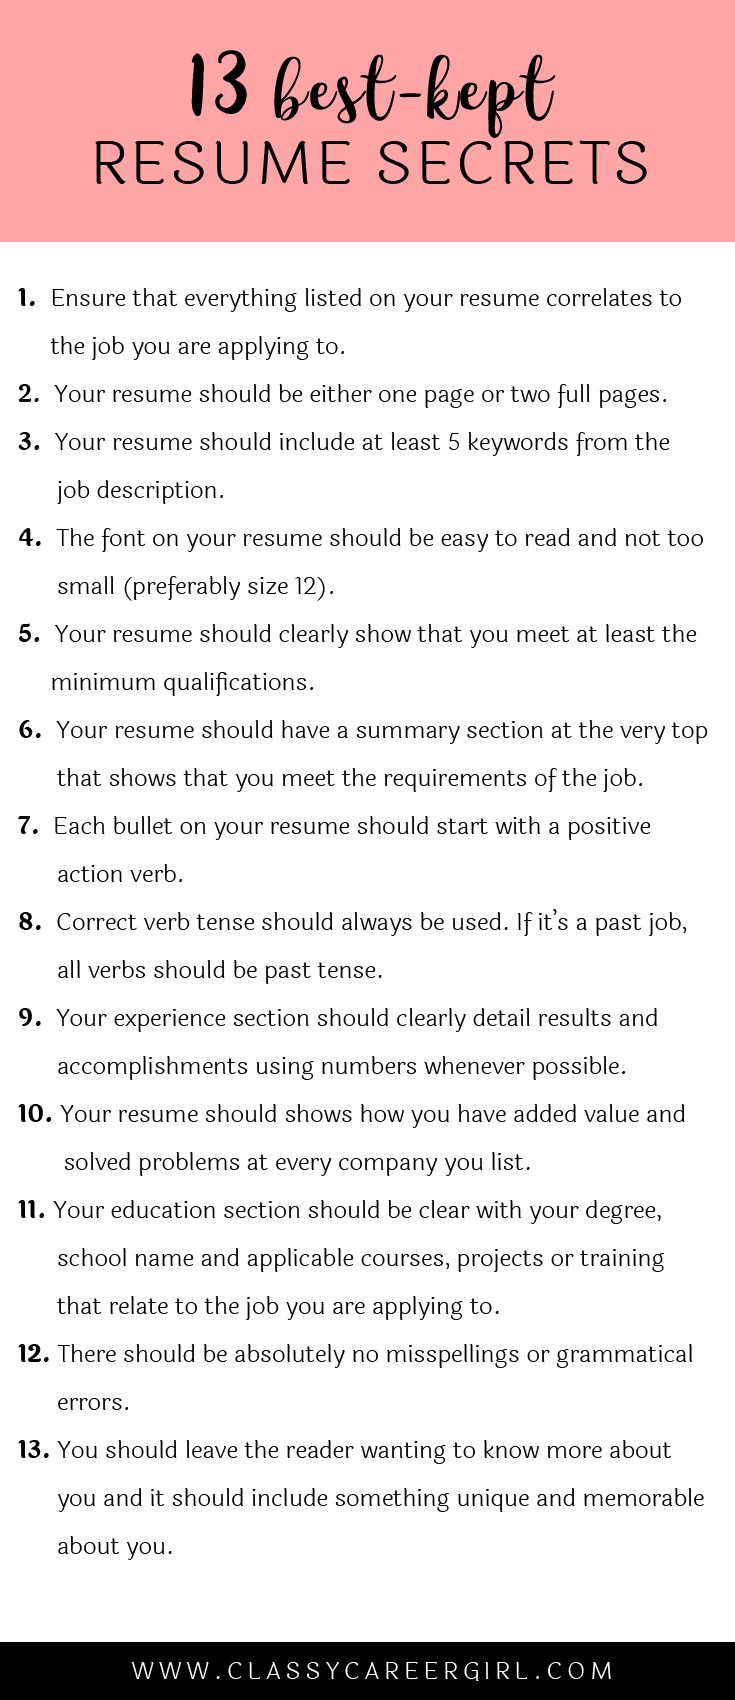 Opposenewapstandardsus  Unique  Ideas About Resume On Pinterest  Cv Format Resume Cv And  With Lovely Some Hiring Managers Will Toss Your Resume Out If You Dont Know These  With Charming Build Resume Online Free Also Free Resume Template Download Pdf In Addition Resumes For Career Changers And Purdue Cco Resume As Well As Sap Project Manager Resume Additionally Sample Resume Office Manager From Pinterestcom With Opposenewapstandardsus  Lovely  Ideas About Resume On Pinterest  Cv Format Resume Cv And  With Charming Some Hiring Managers Will Toss Your Resume Out If You Dont Know These  And Unique Build Resume Online Free Also Free Resume Template Download Pdf In Addition Resumes For Career Changers From Pinterestcom